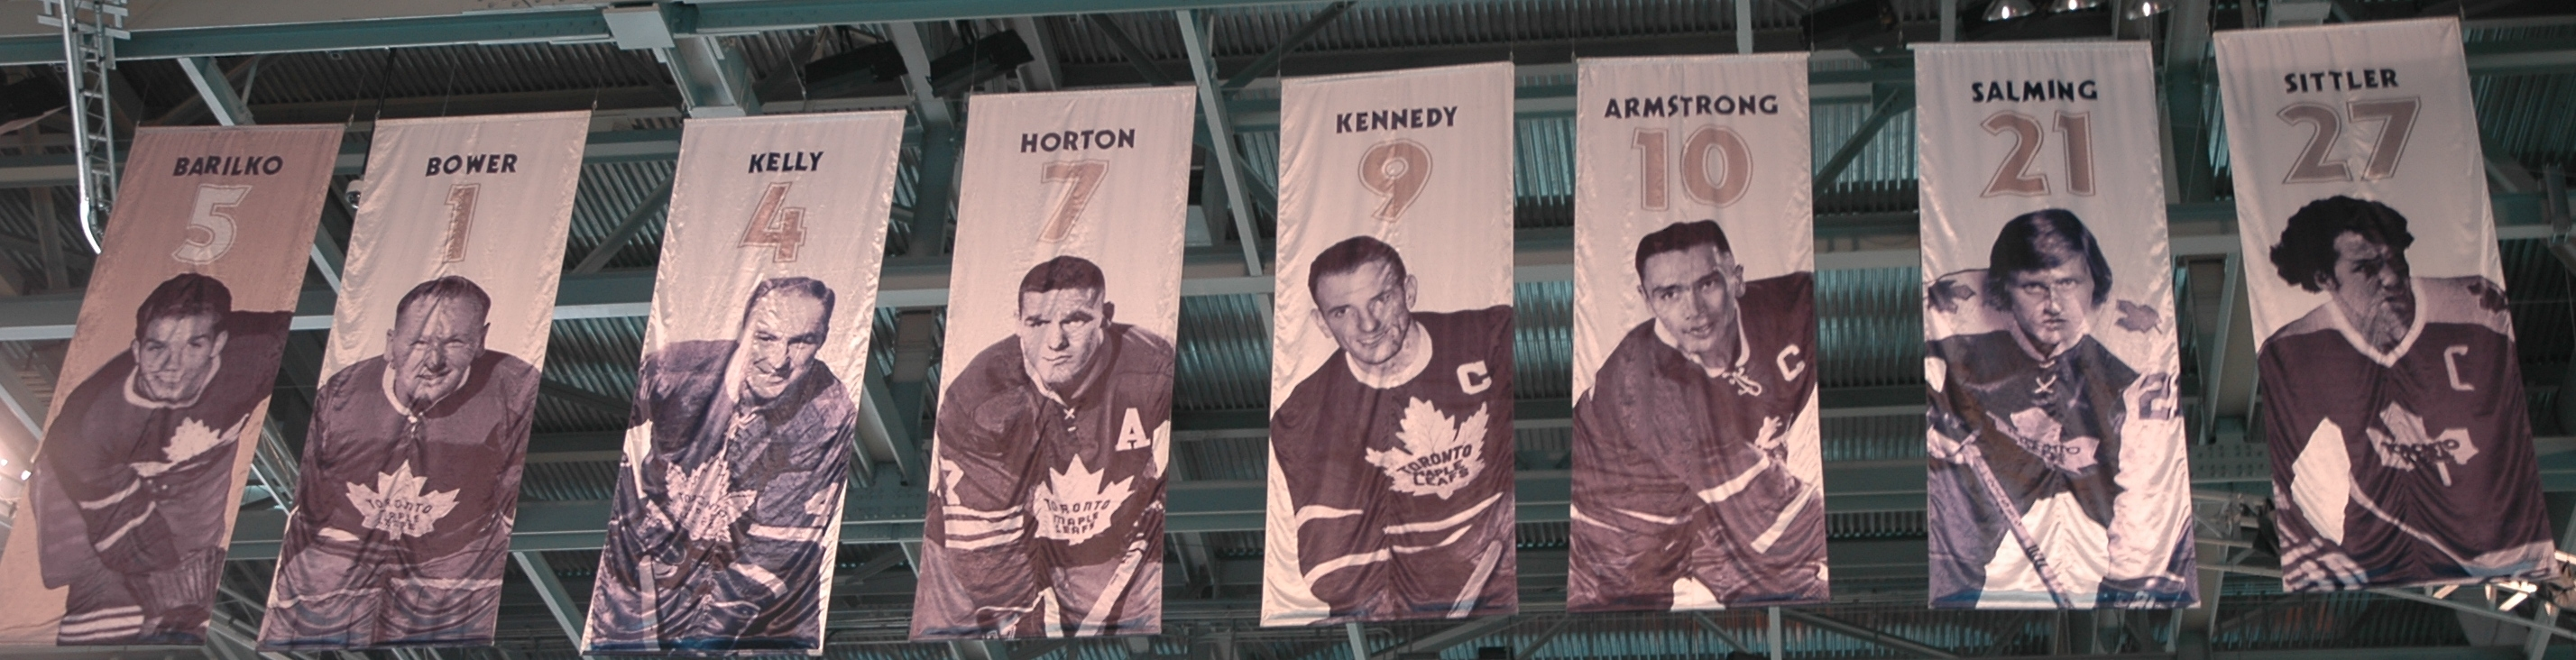 Maple_Leafs_Banner_4.jpg